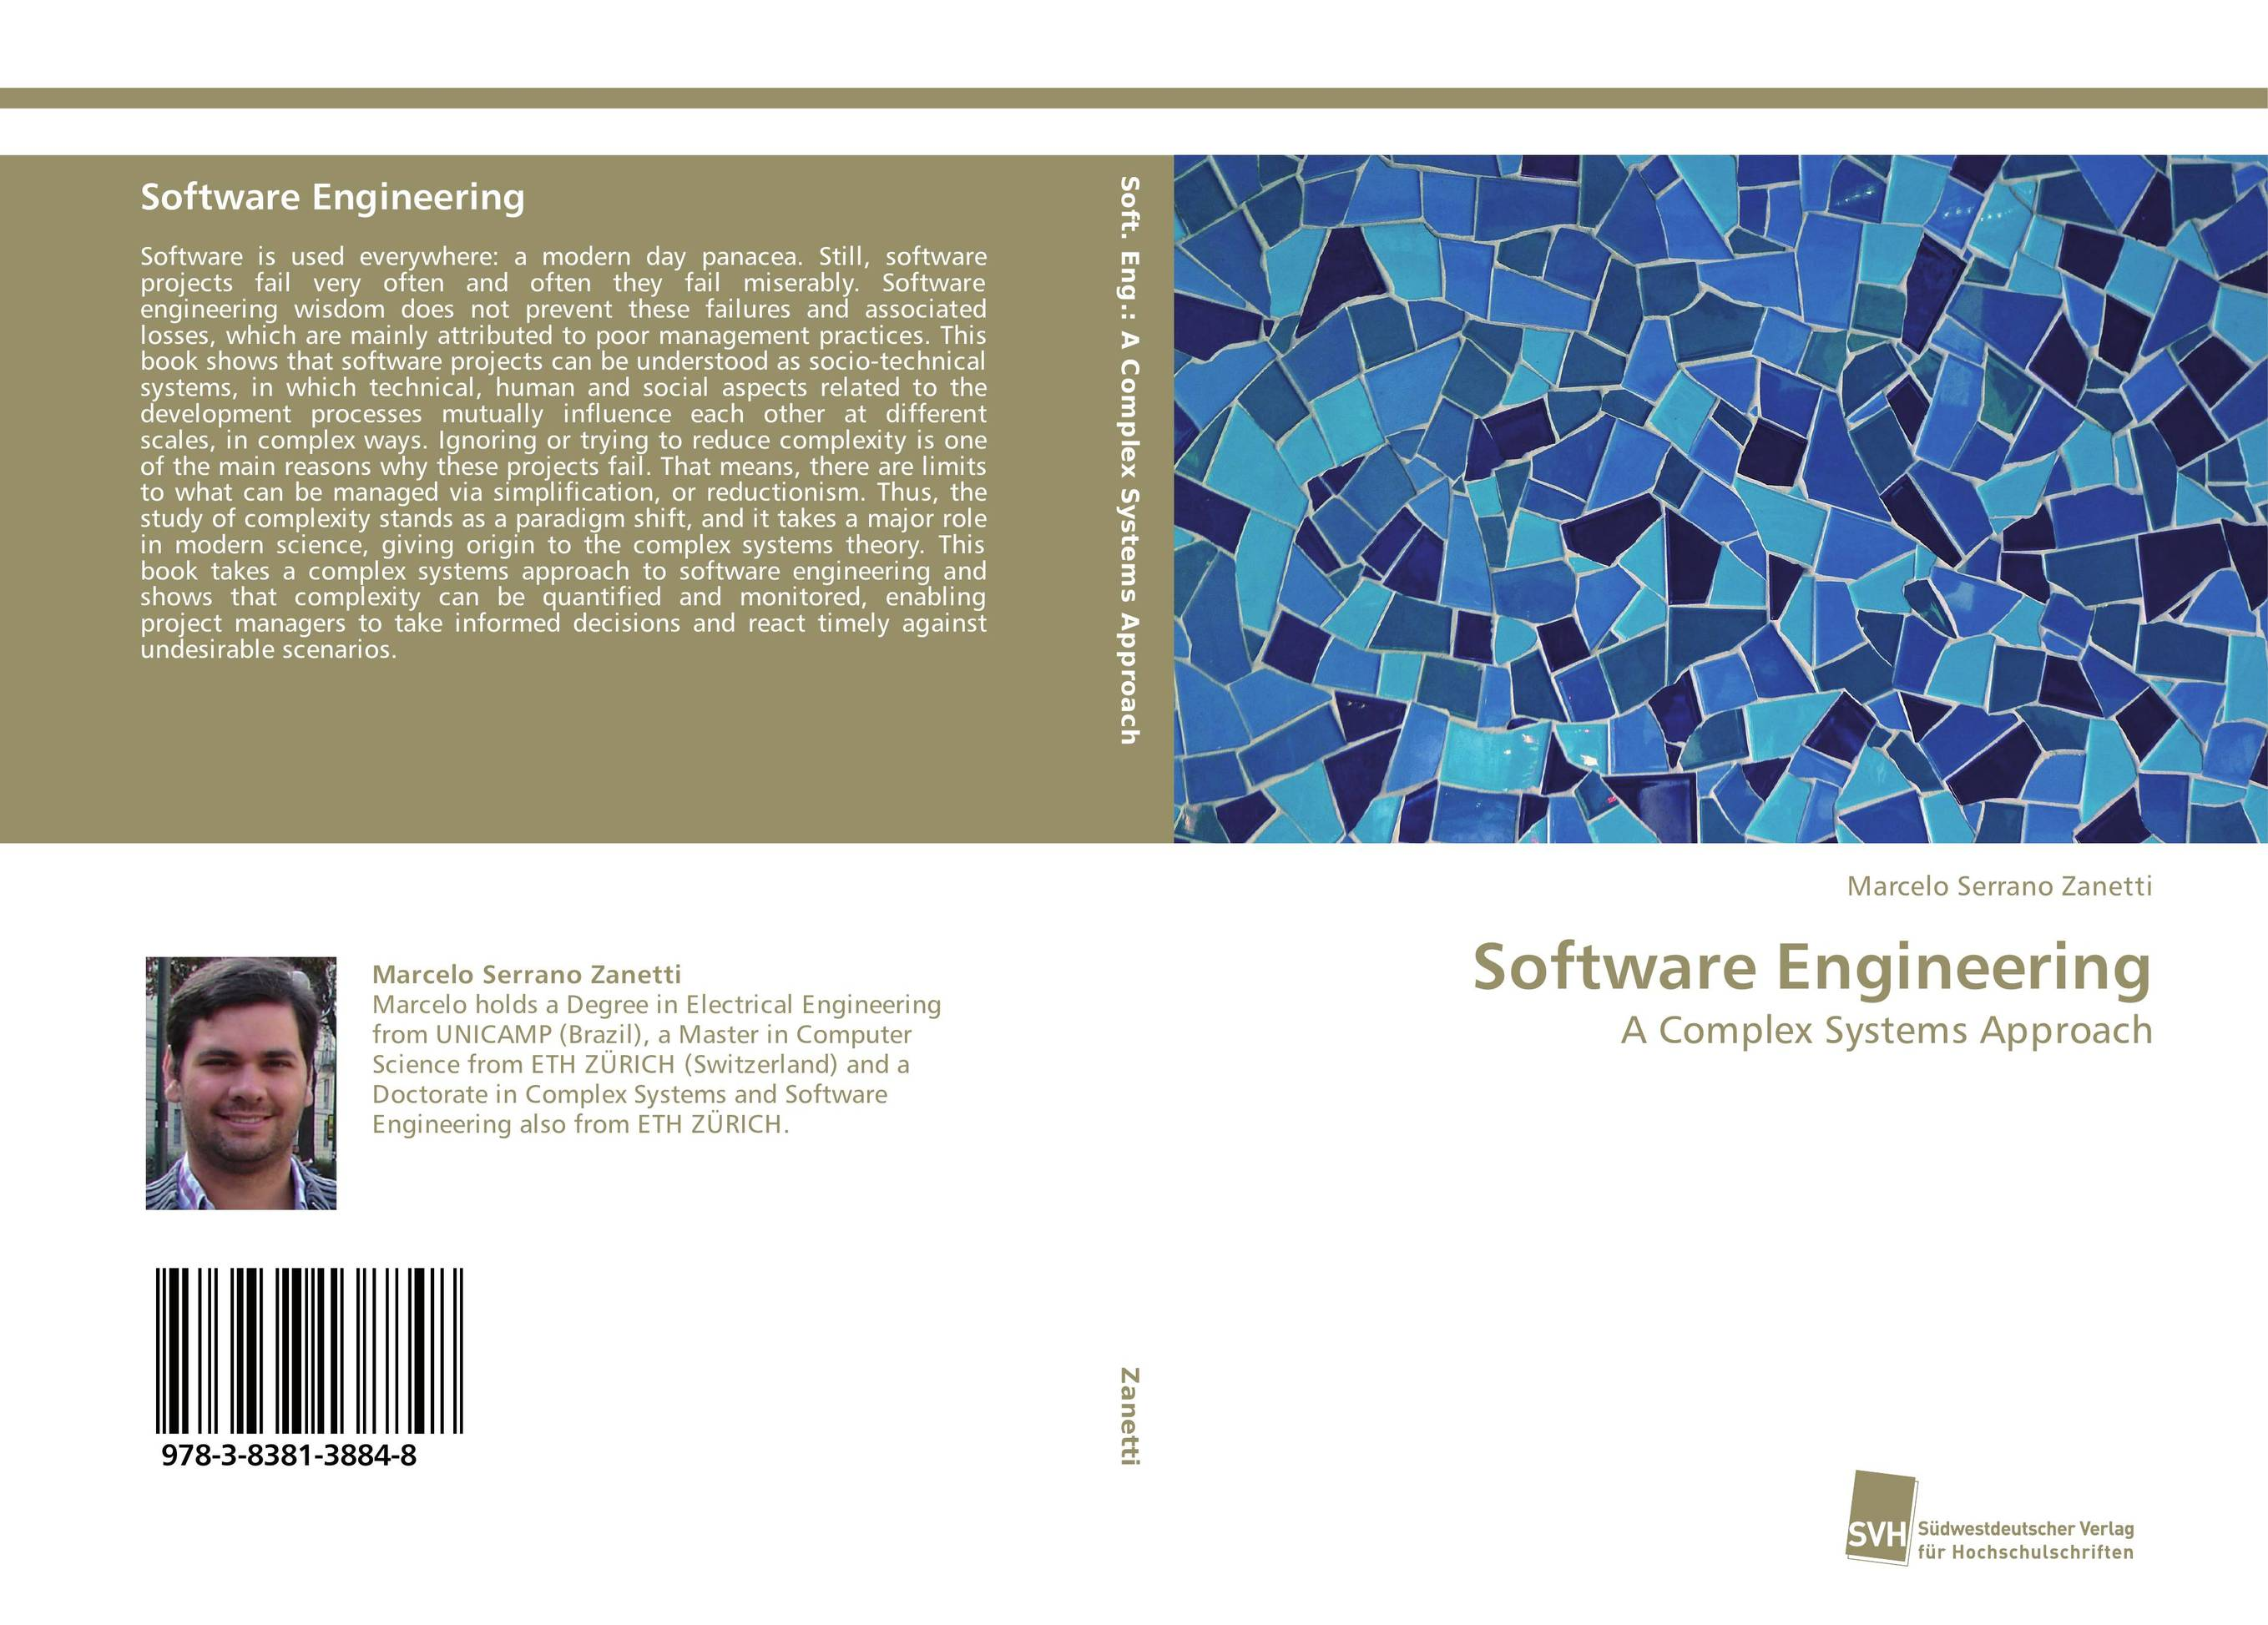 Software Engineering thermo operated water valves can be used in food processing equipments biomass boilers and hydraulic systems